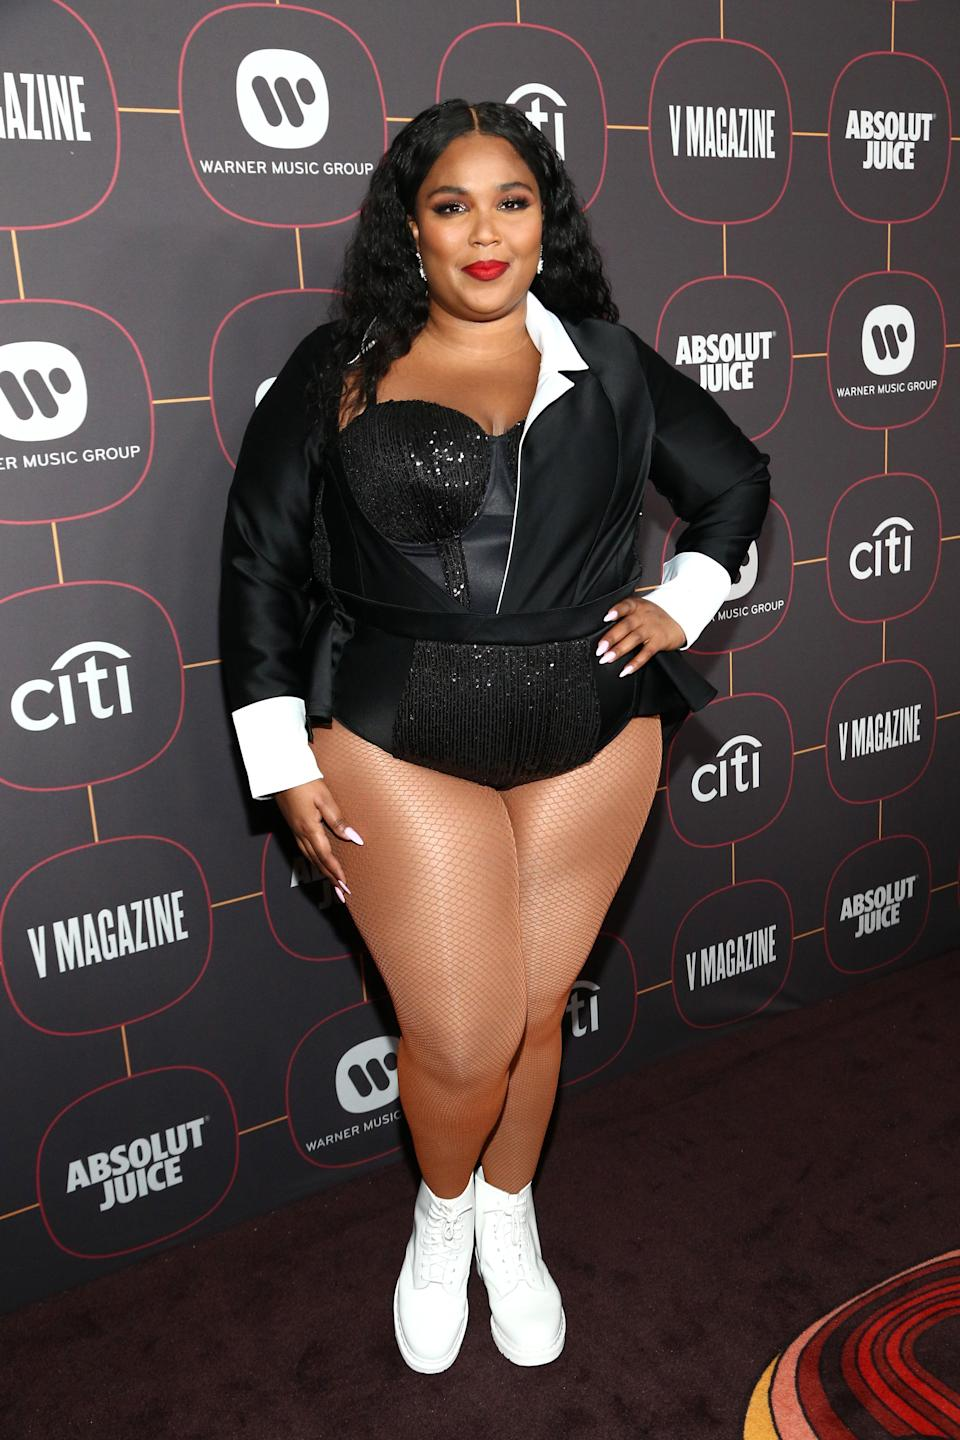 Lizzo proved once again that she is not afraid to take risks with her fashion choices when she turned up at the Warner Music Group Pre-Grammy Party in a black tuxedo leotard and all-white boots.